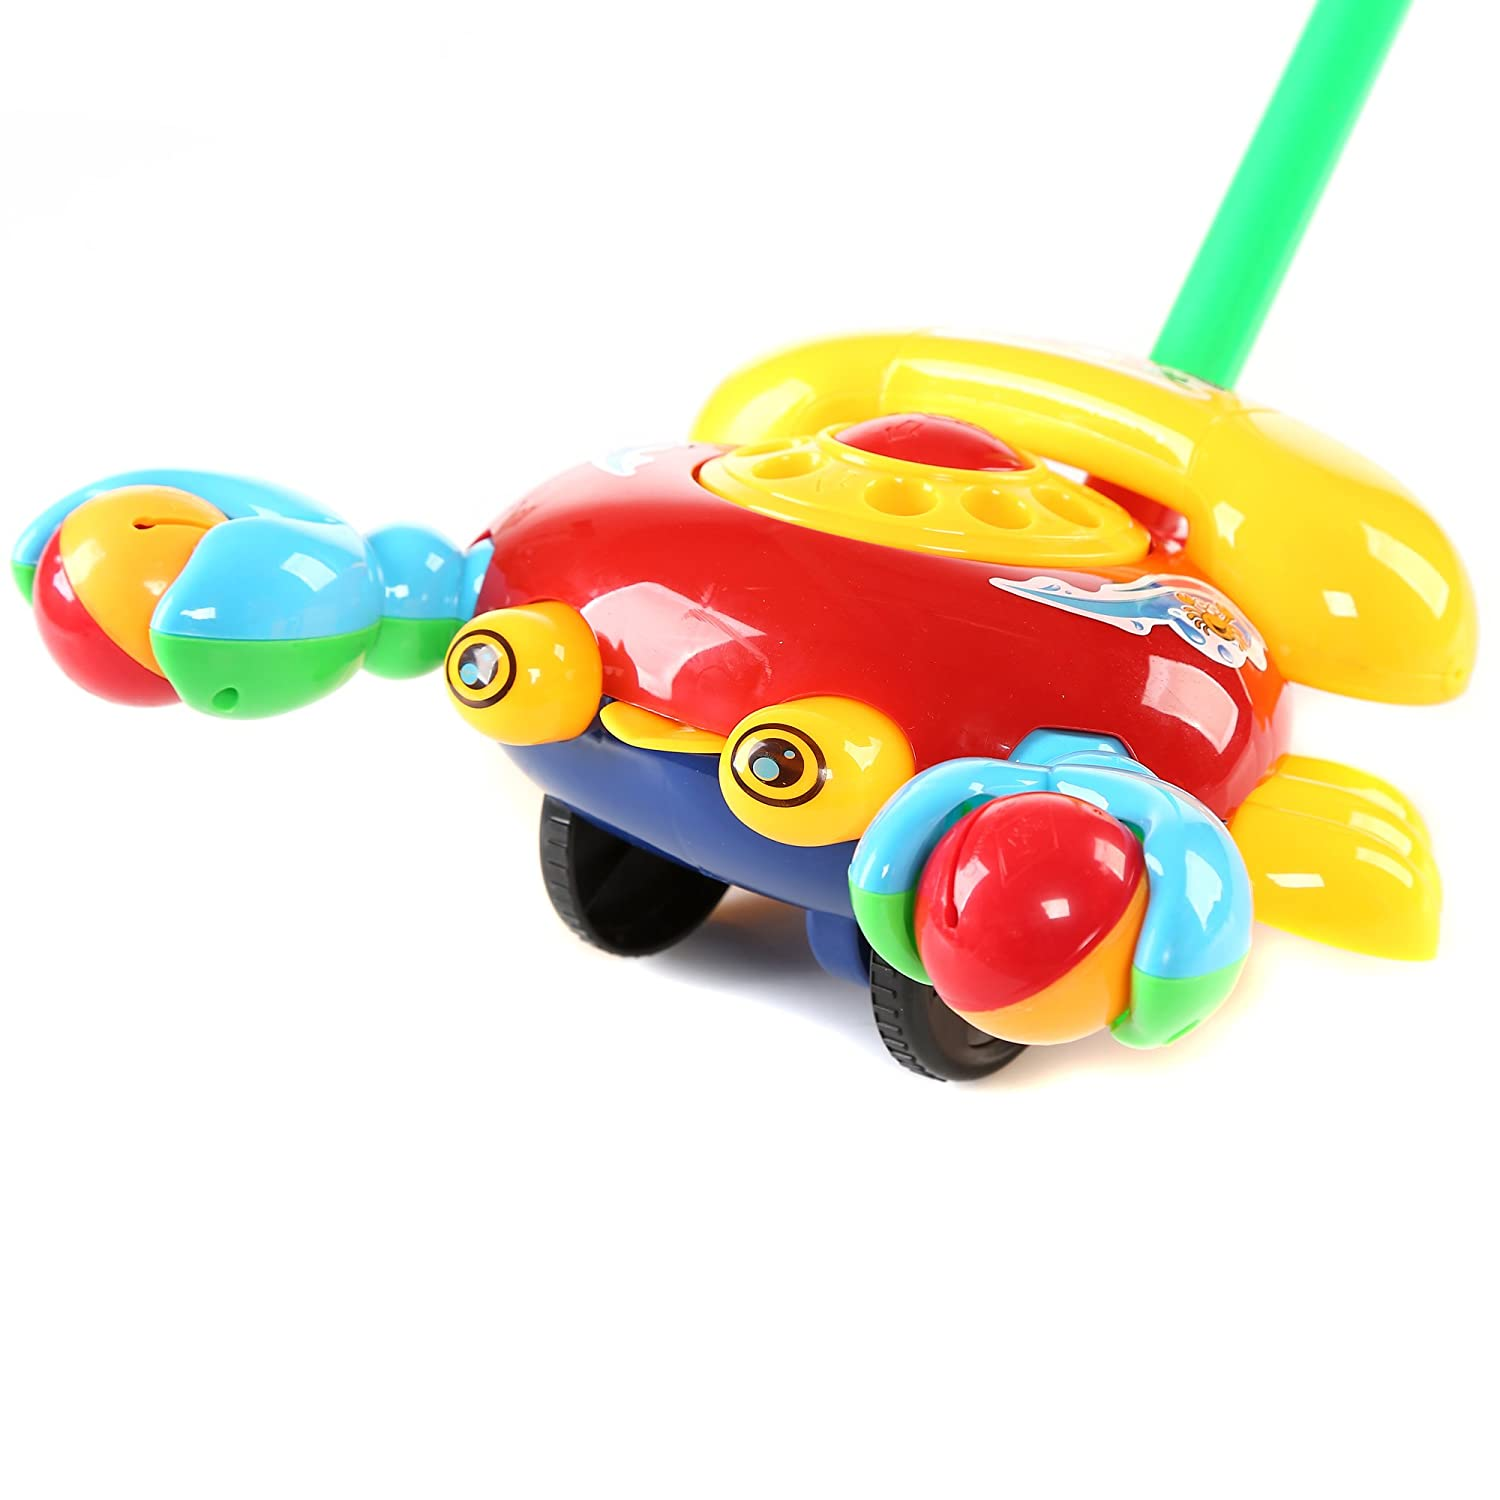 Fun Central BC902 1 Pc 10.5 Inches Telephone Push Toy Pushing Toy for Kids Outdoor Push Toys Classic Push and Pull Toys Push Around Toy for Baptism Birthday and Party Prizes